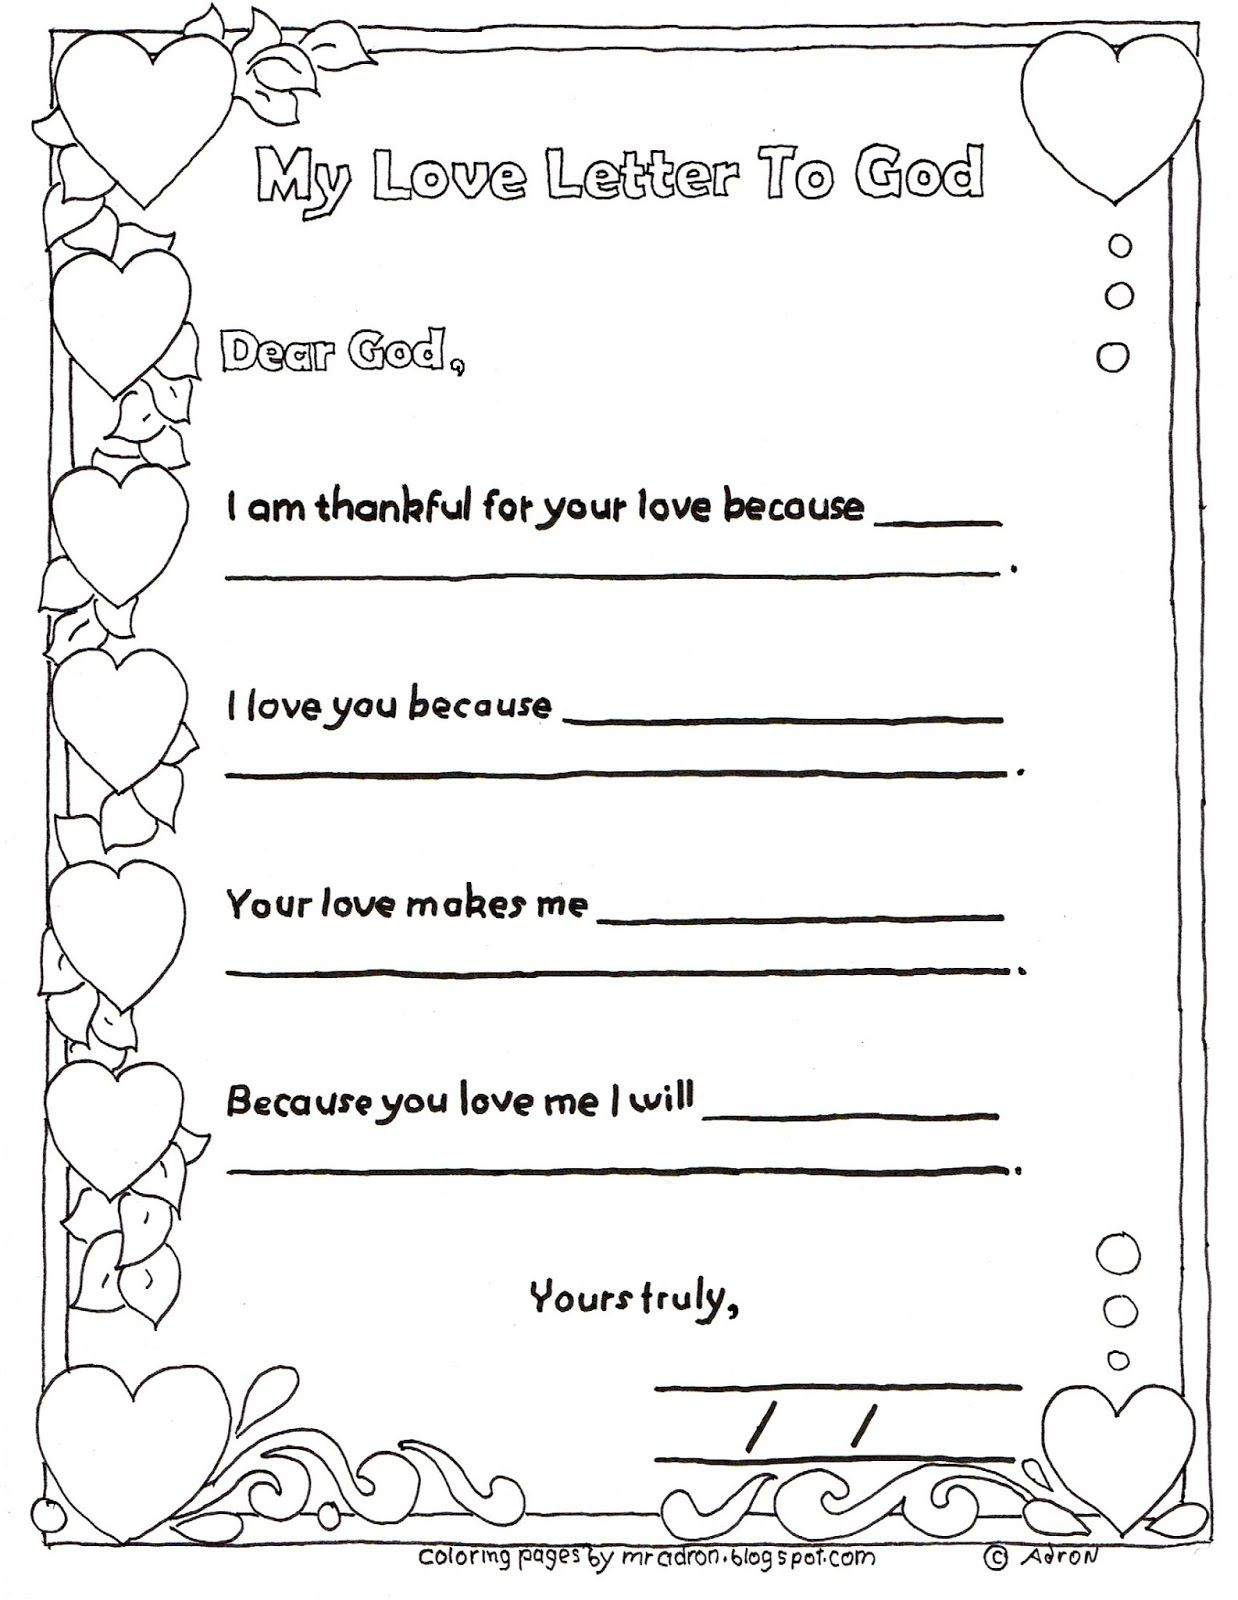 This Printable Coloring Page Is Perfect For A Church